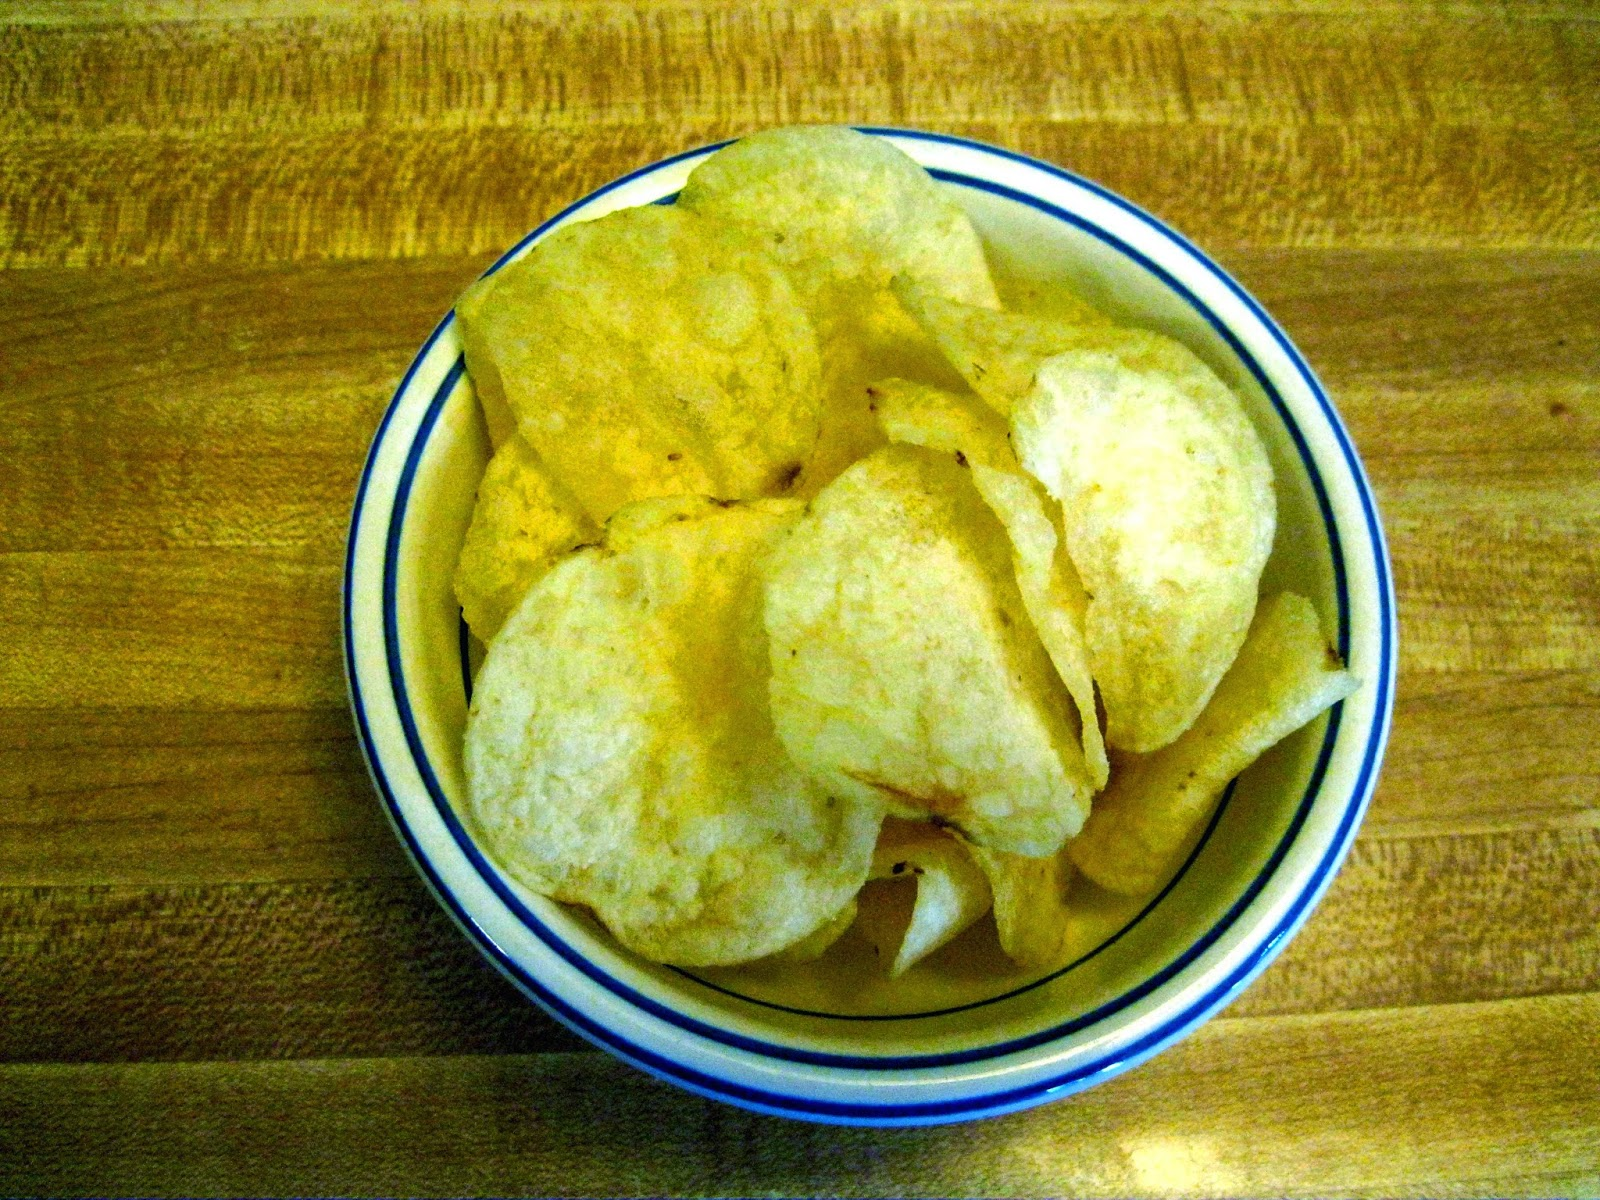 Potato Chips photo by sookietex